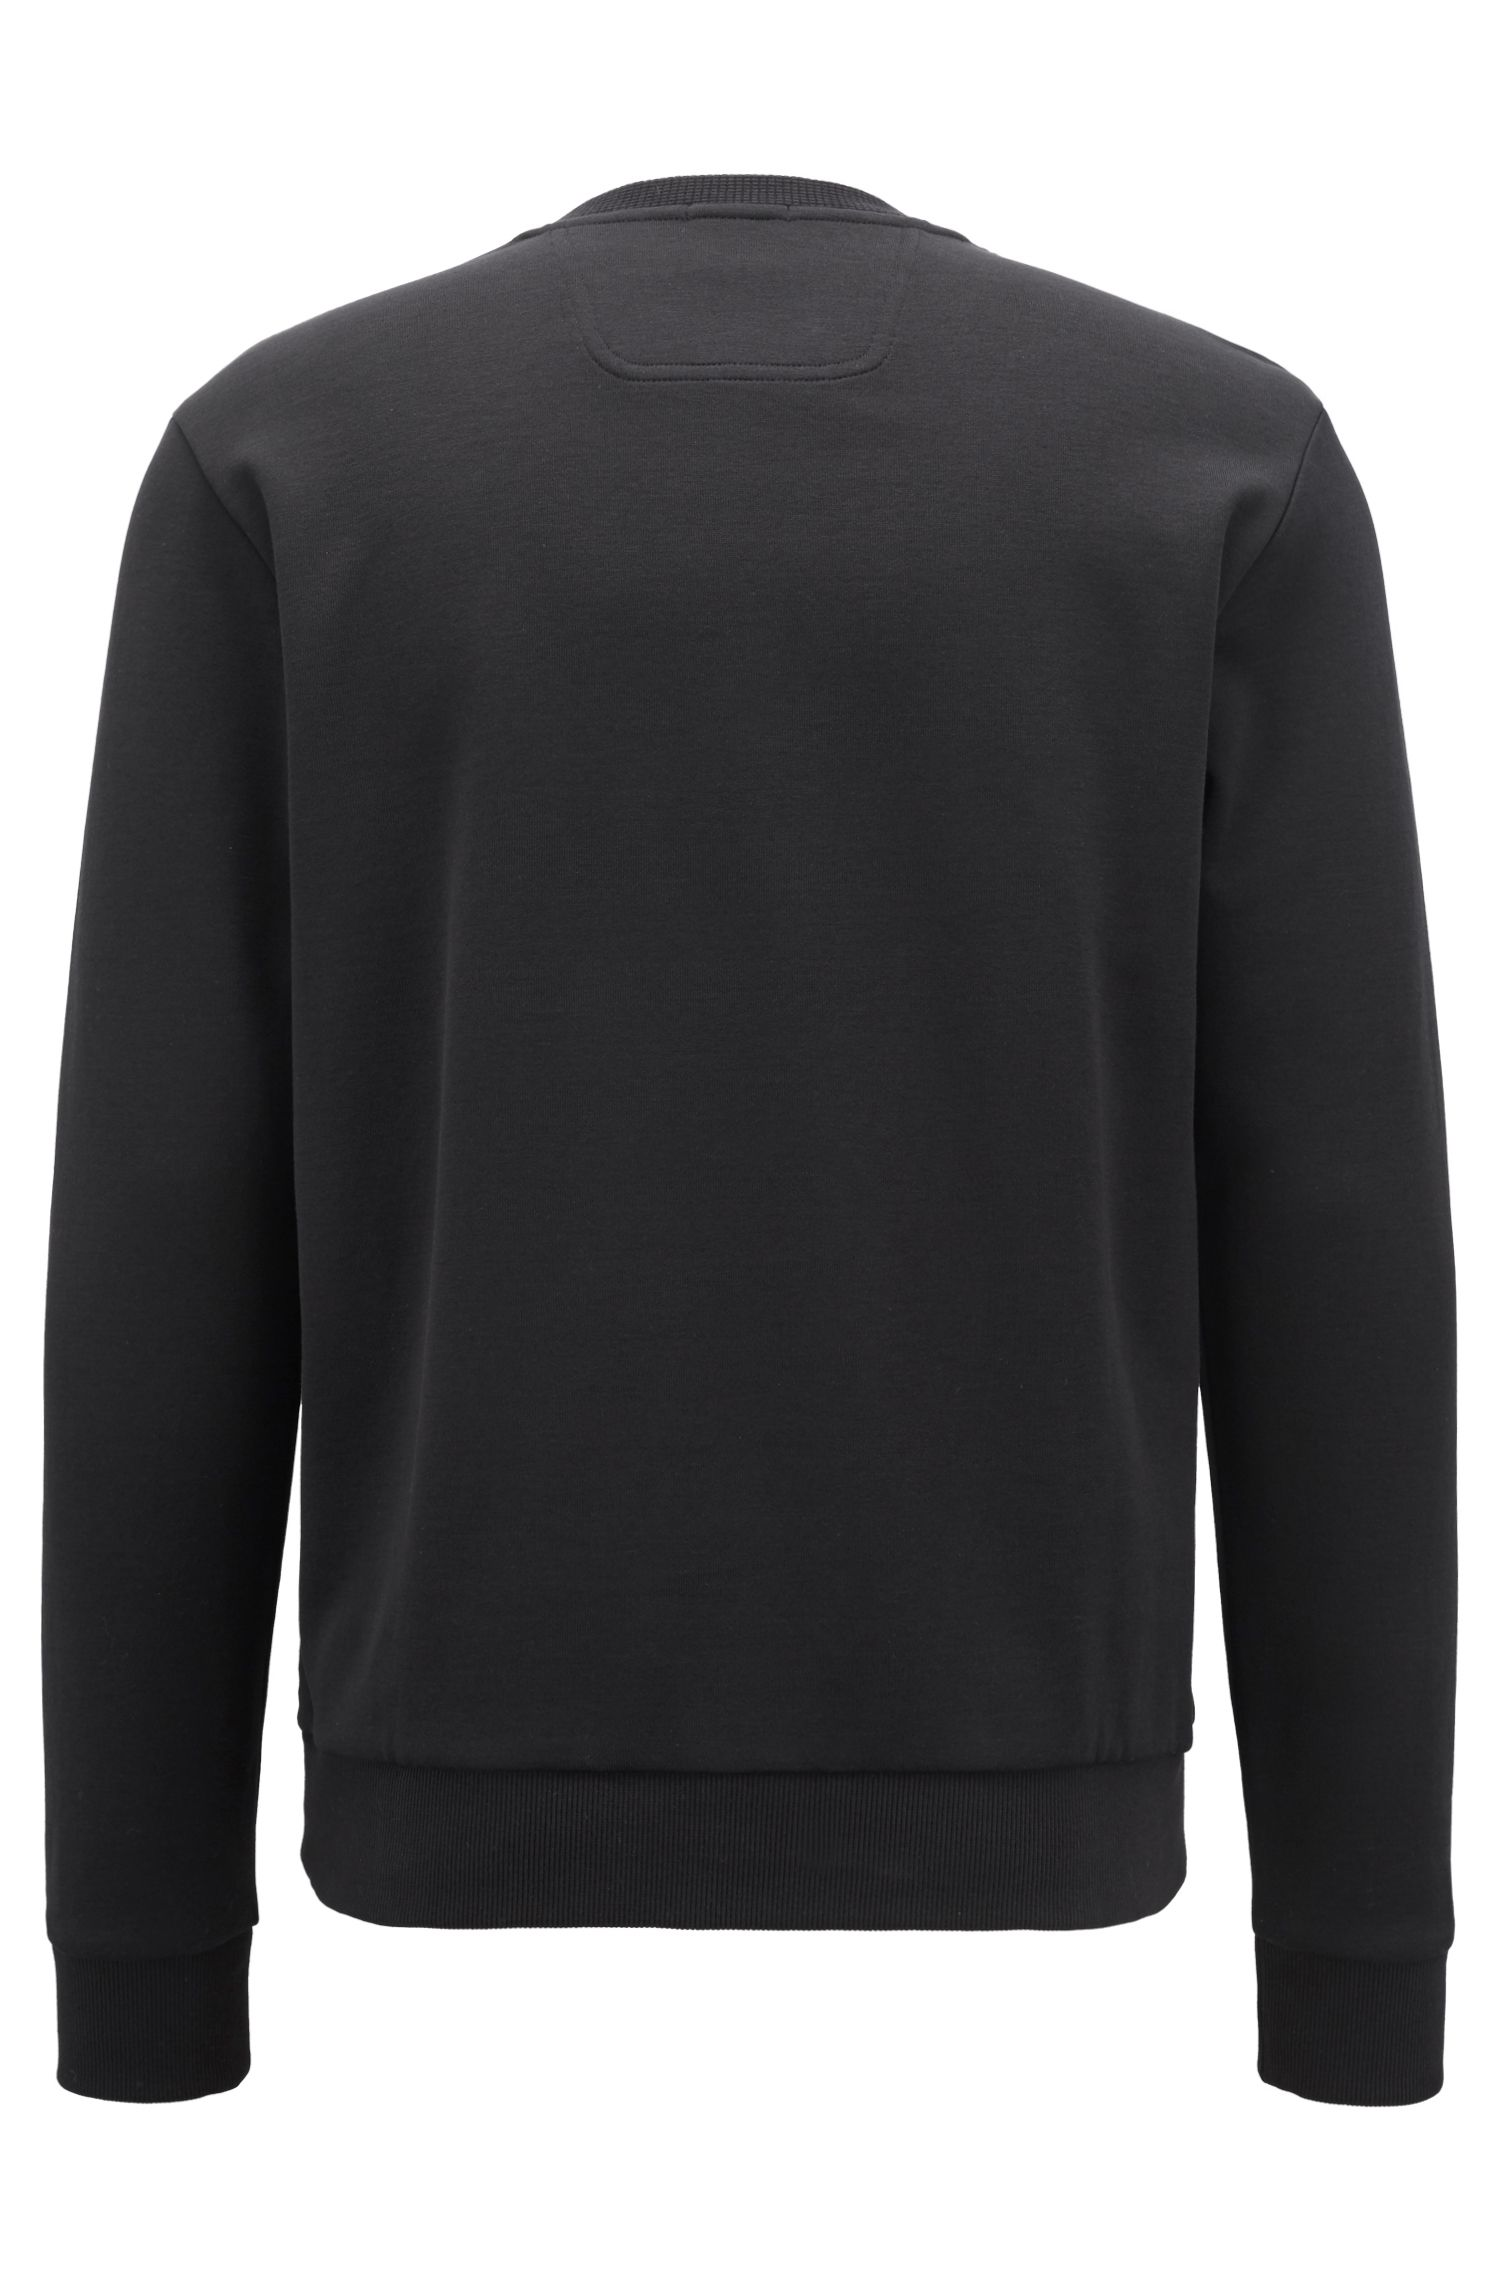 Crew-neck logo sweatshirt in a cotton blend, Black